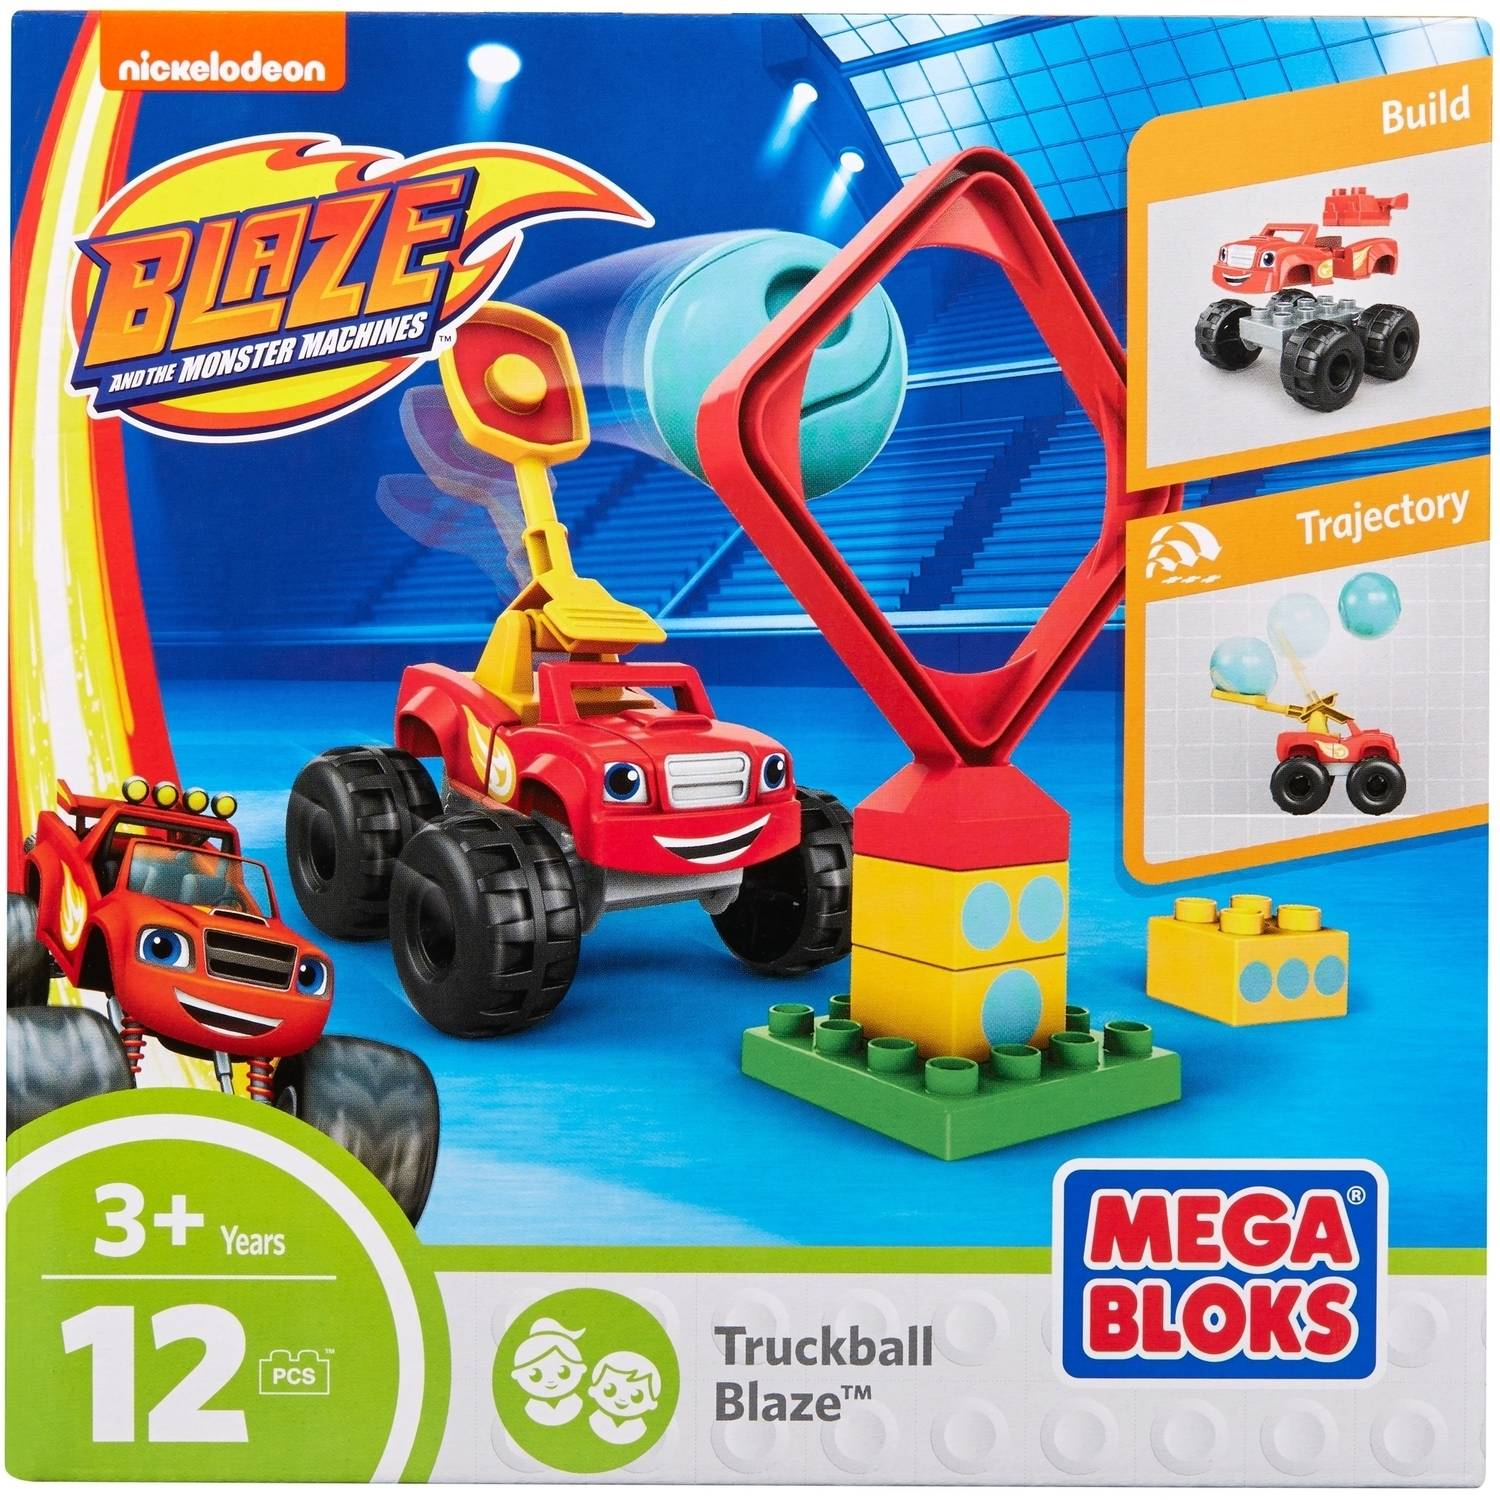 Mega Bloks Nickelodeon Blaze and the Monster Machines Truckball Blaze